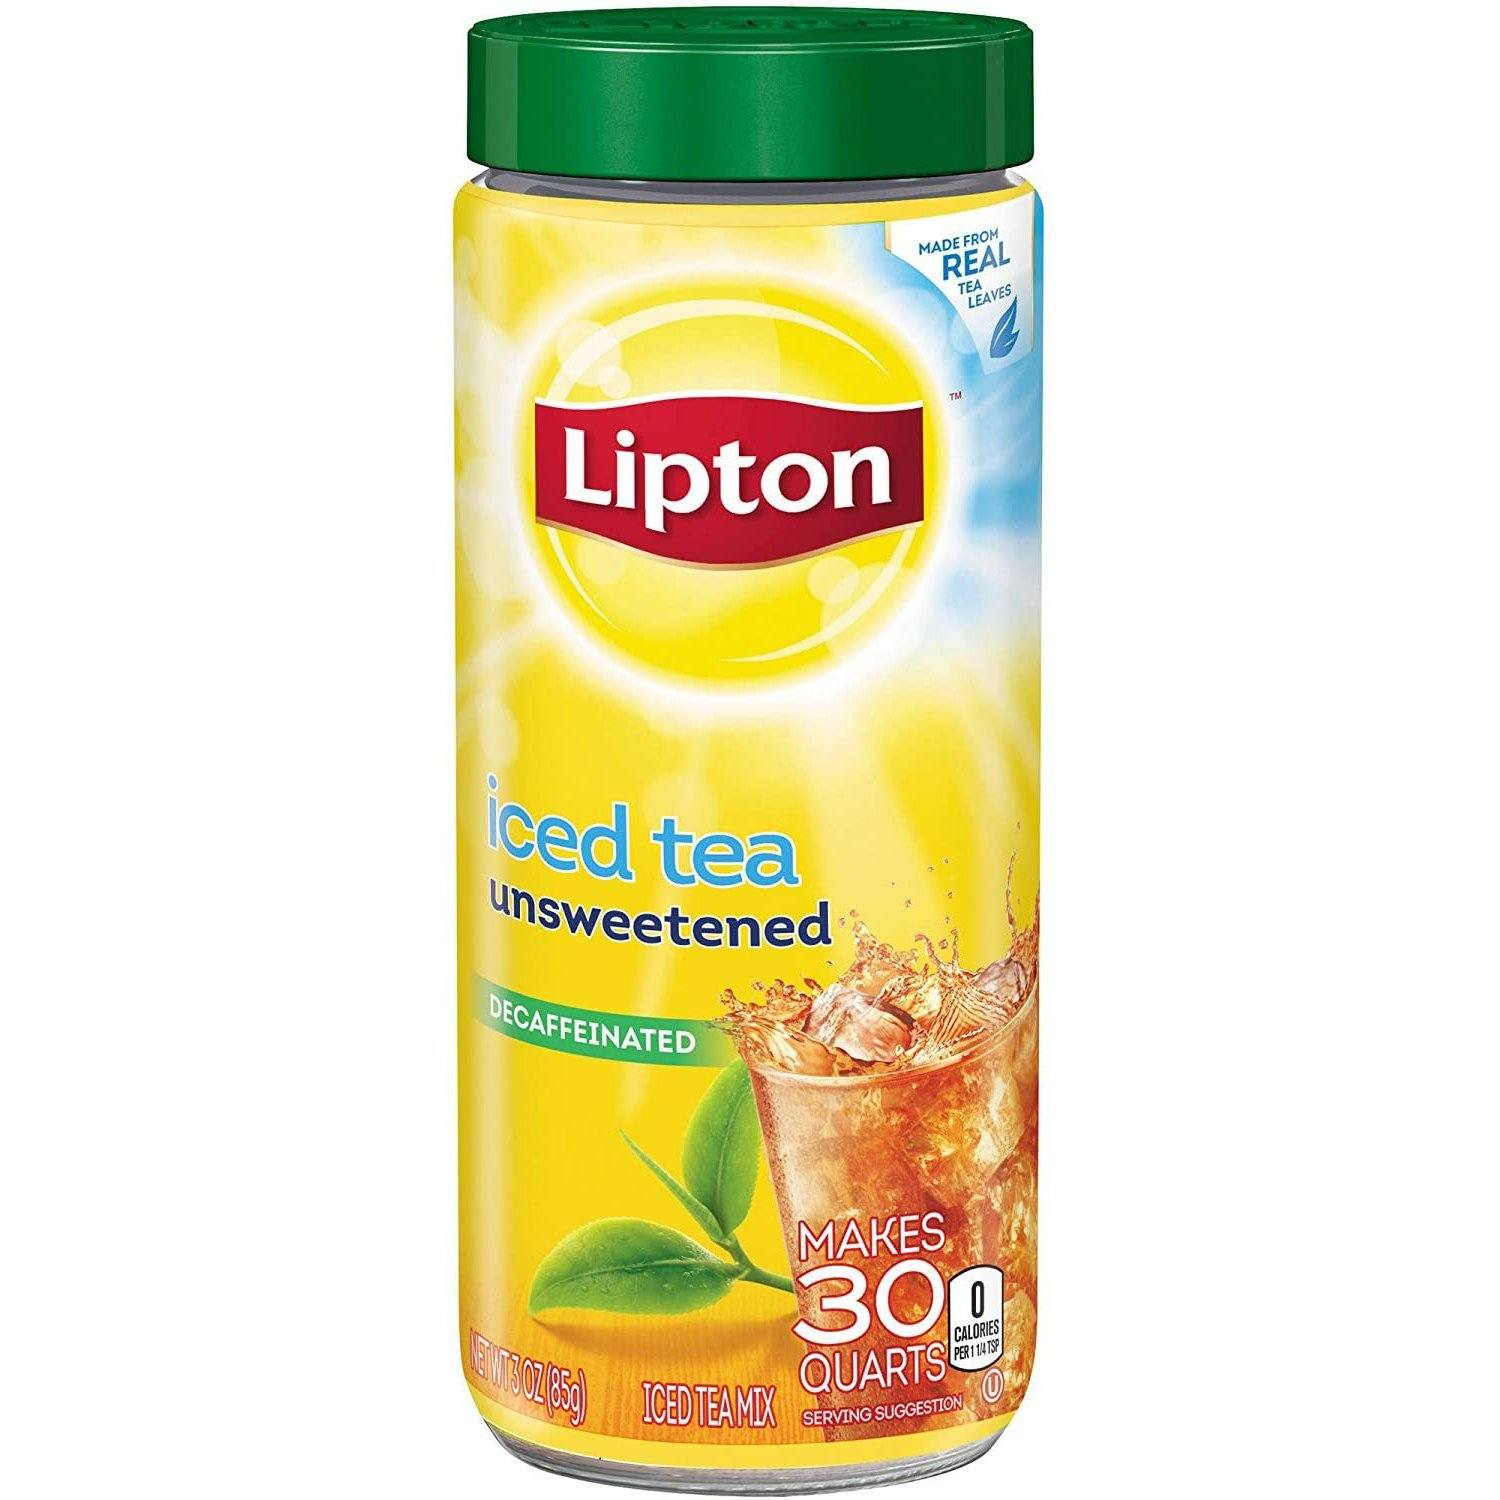 Lipton Iced Tea Mix Lipton Unsweetened Decaf 30 Quarts - 3 Ounce